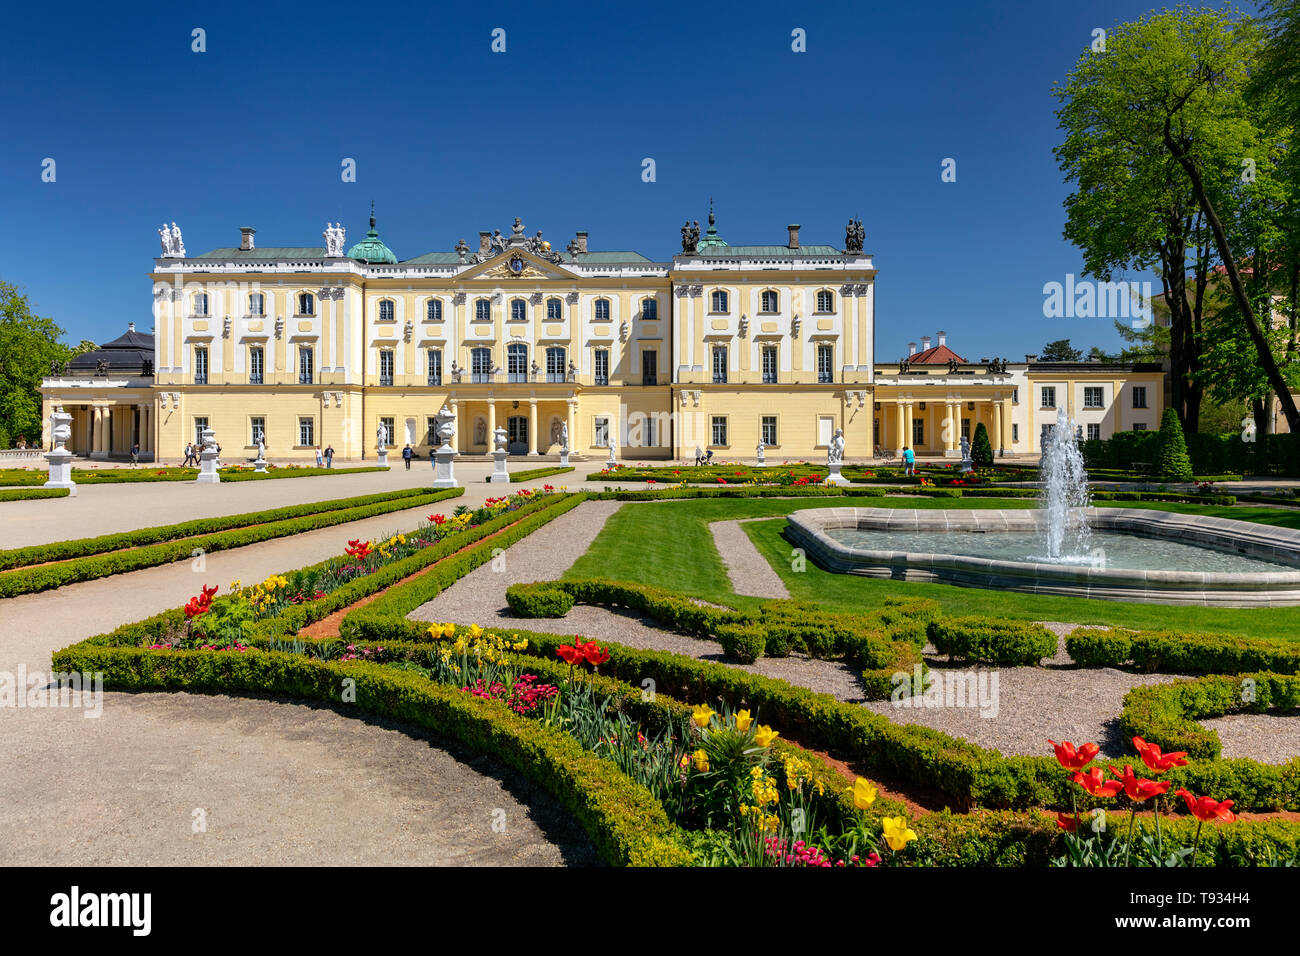 The Branicki Baroque palace and Medical University in Bialystok, Podlasie, Poland Stock Photo